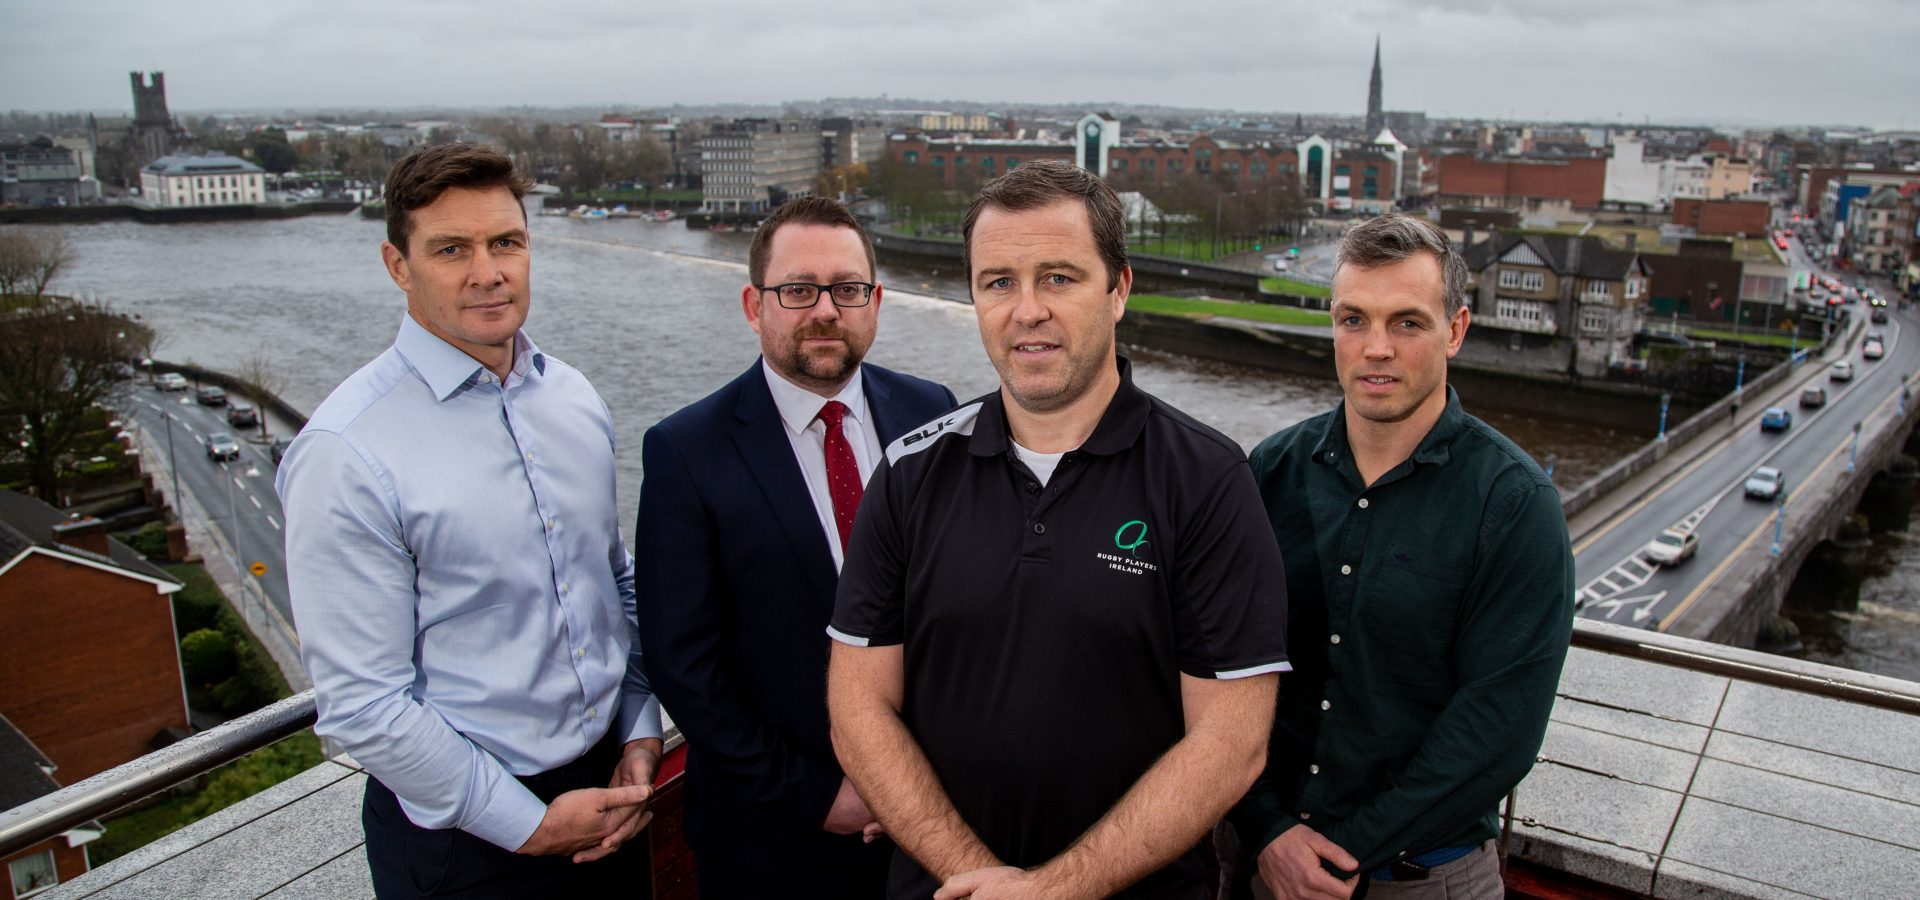 LIMERICK STRAND HOTEL ADDS TO WELLNESS PARTNERSHIPS